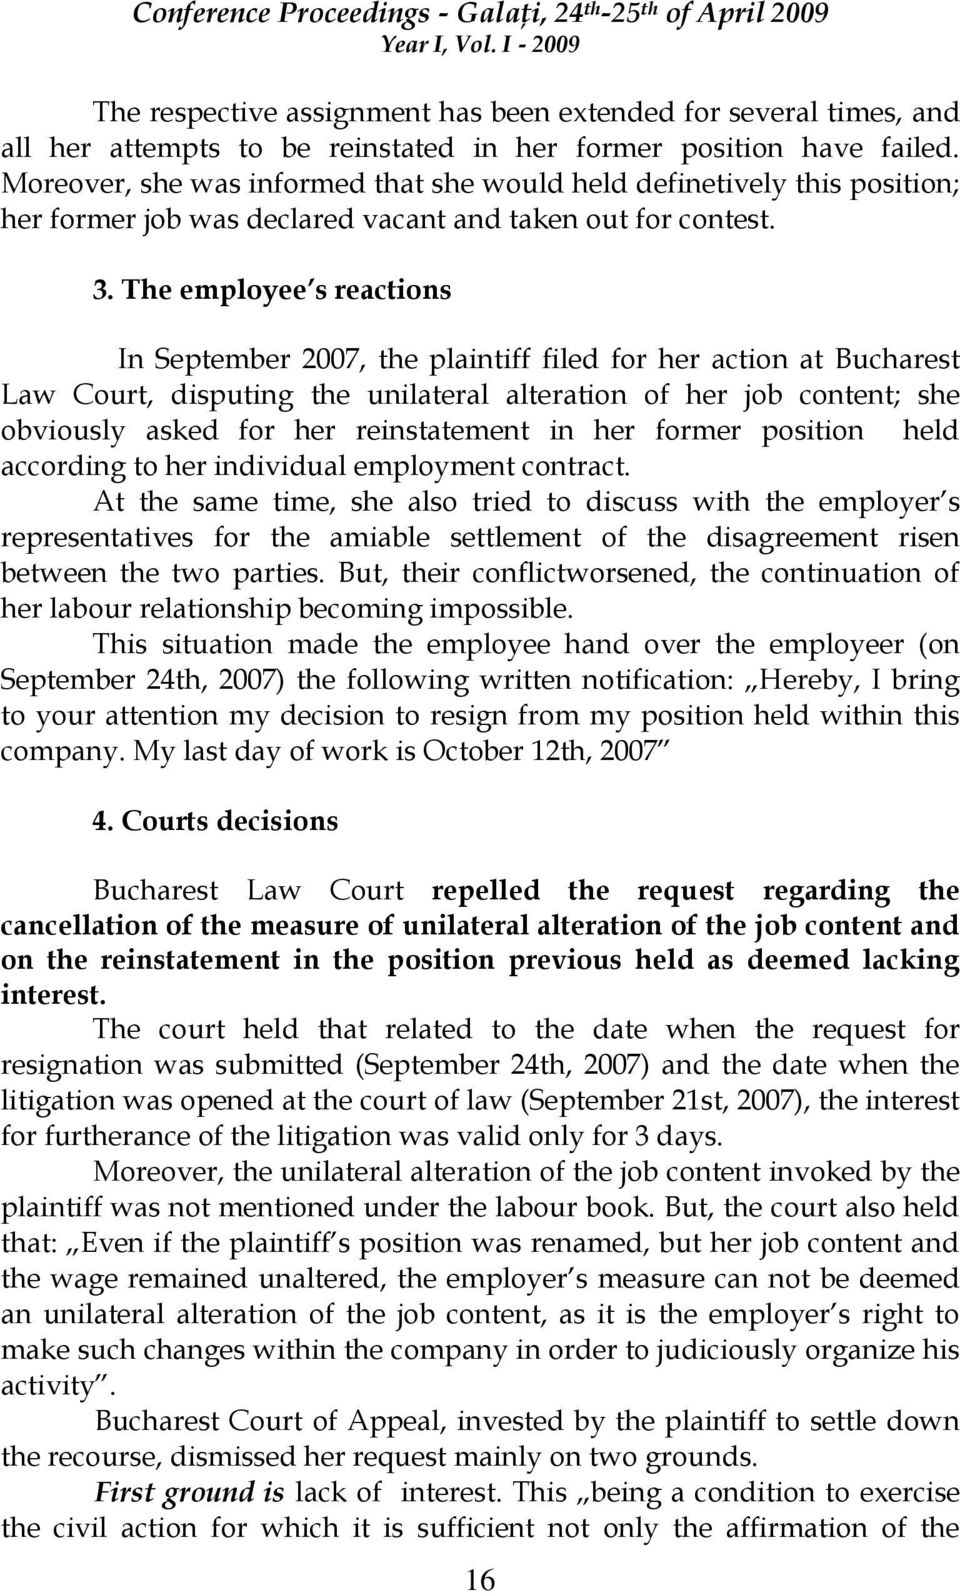 The employee s reactions In September 2007, the plaintiff filed for her action at Bucharest Law Court, disputing the unilateral alteration of her job content; she obviously asked for her